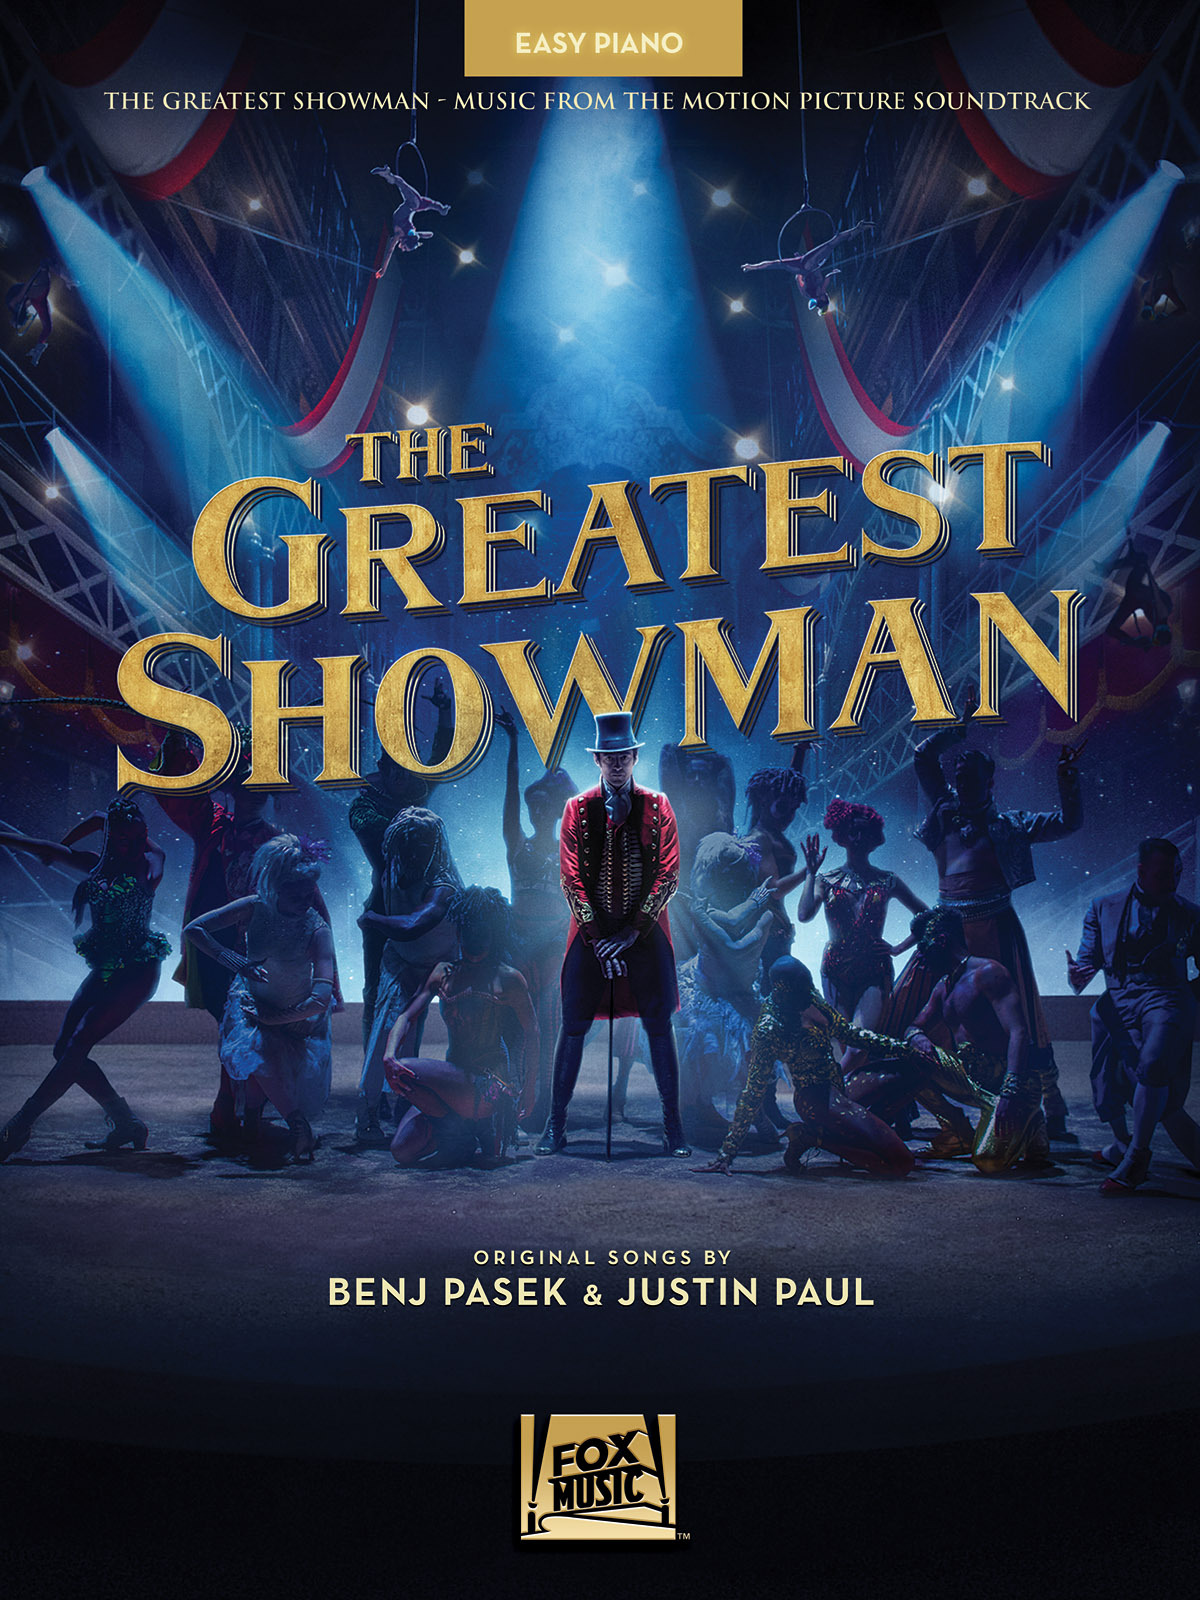 THE GREATEST SHOWMAN PIANO